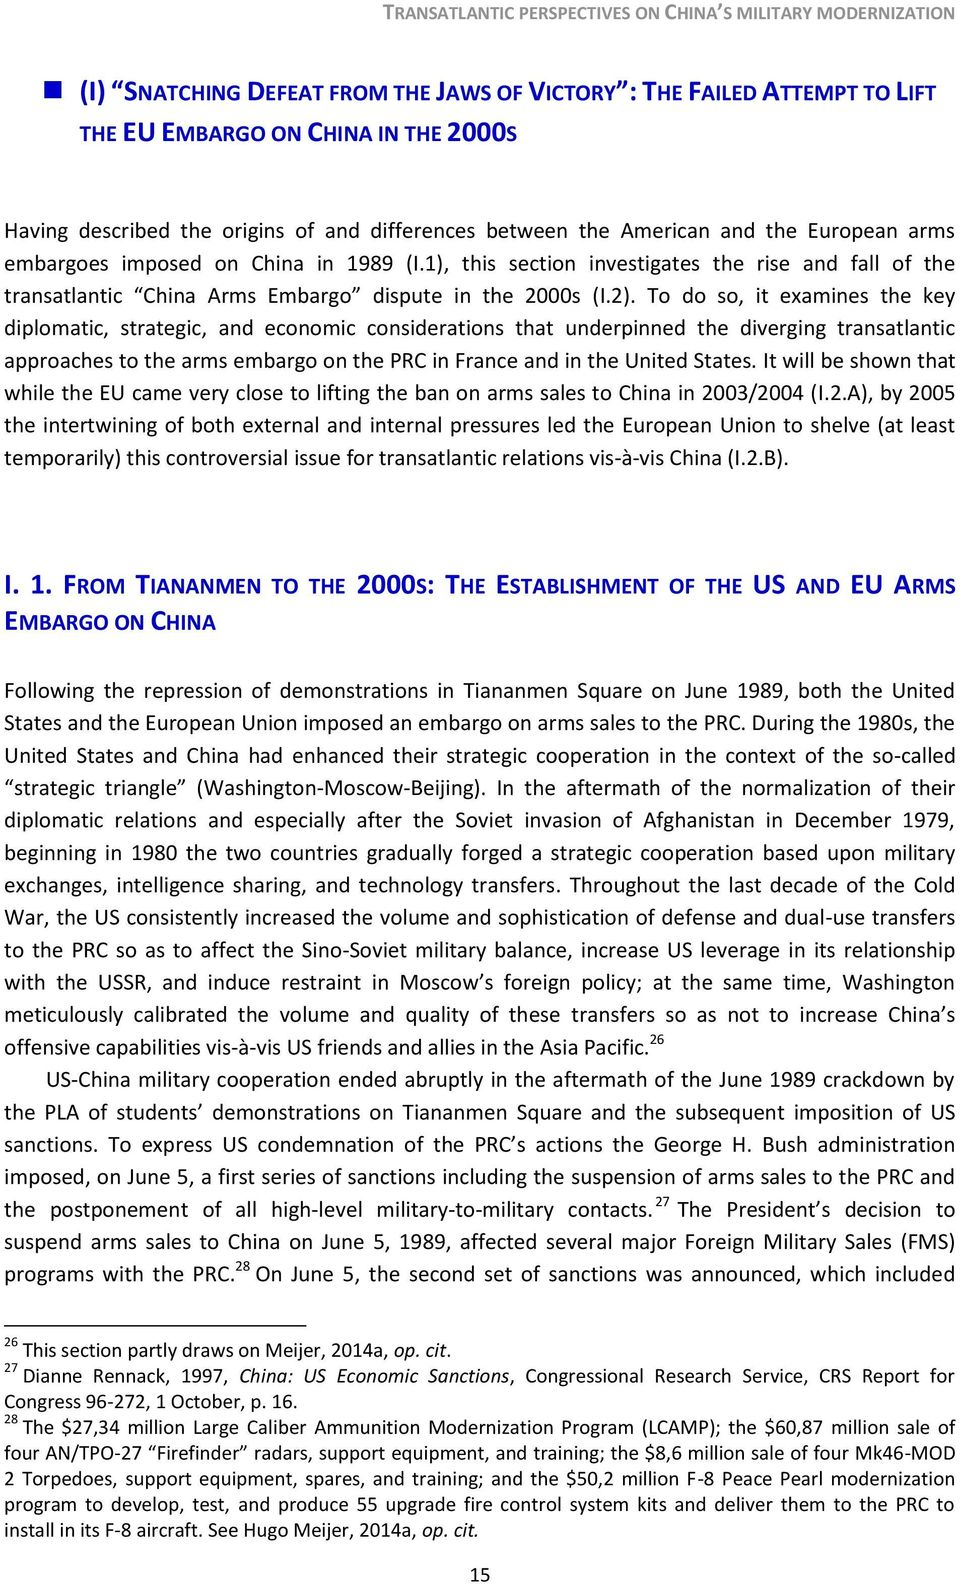 To do so, it examines the key diplomatic, strategic, and economic considerations that underpinned the diverging transatlantic approaches to the arms embargo on the PRC in France and in the United